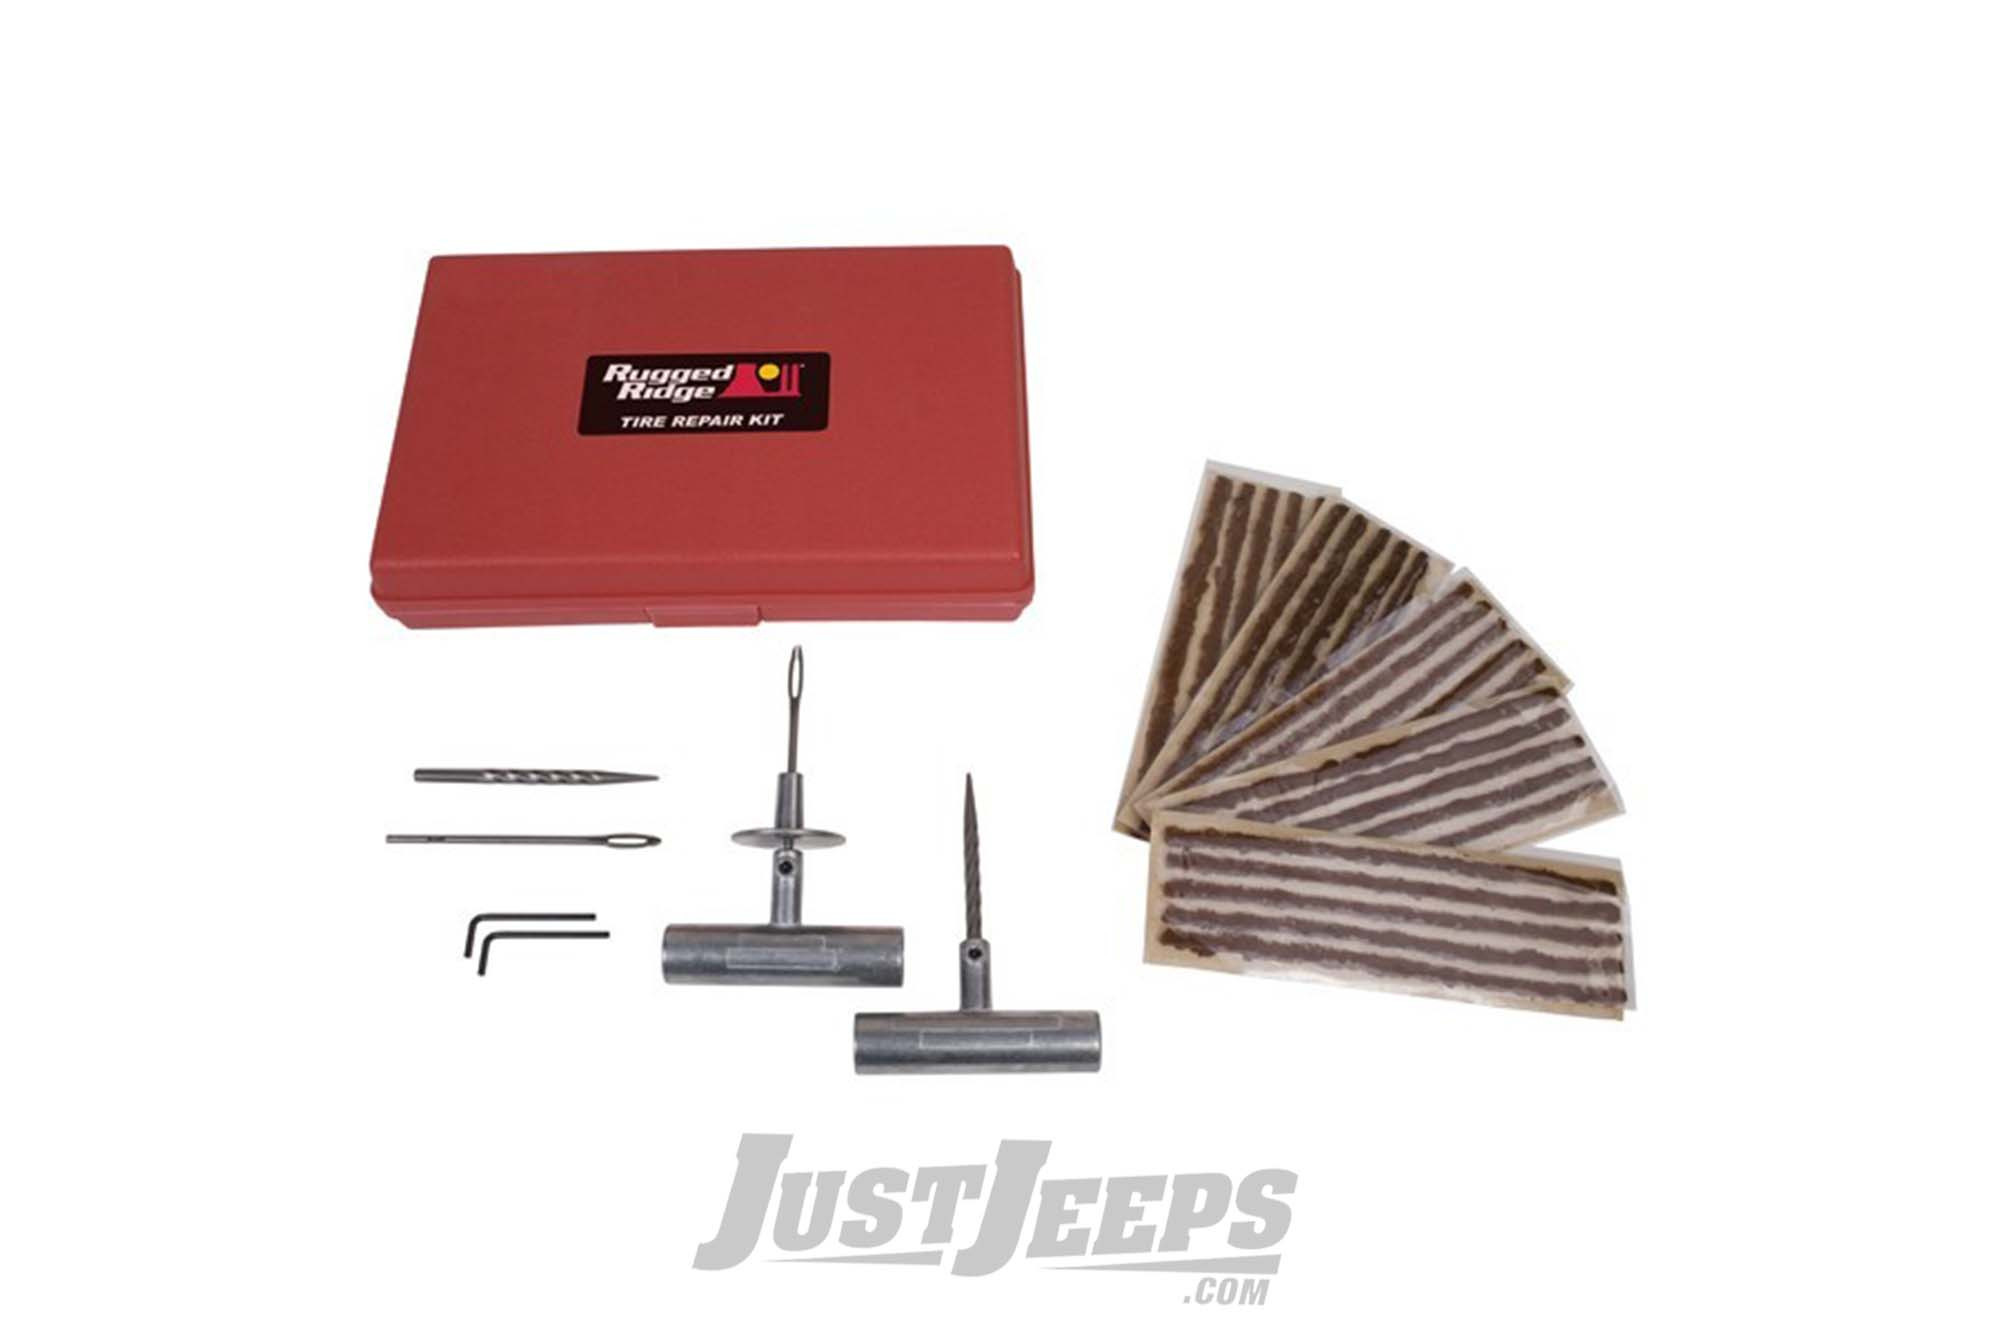 Just Jeeps Rugged Ridge Tire Repair Kit With Essential